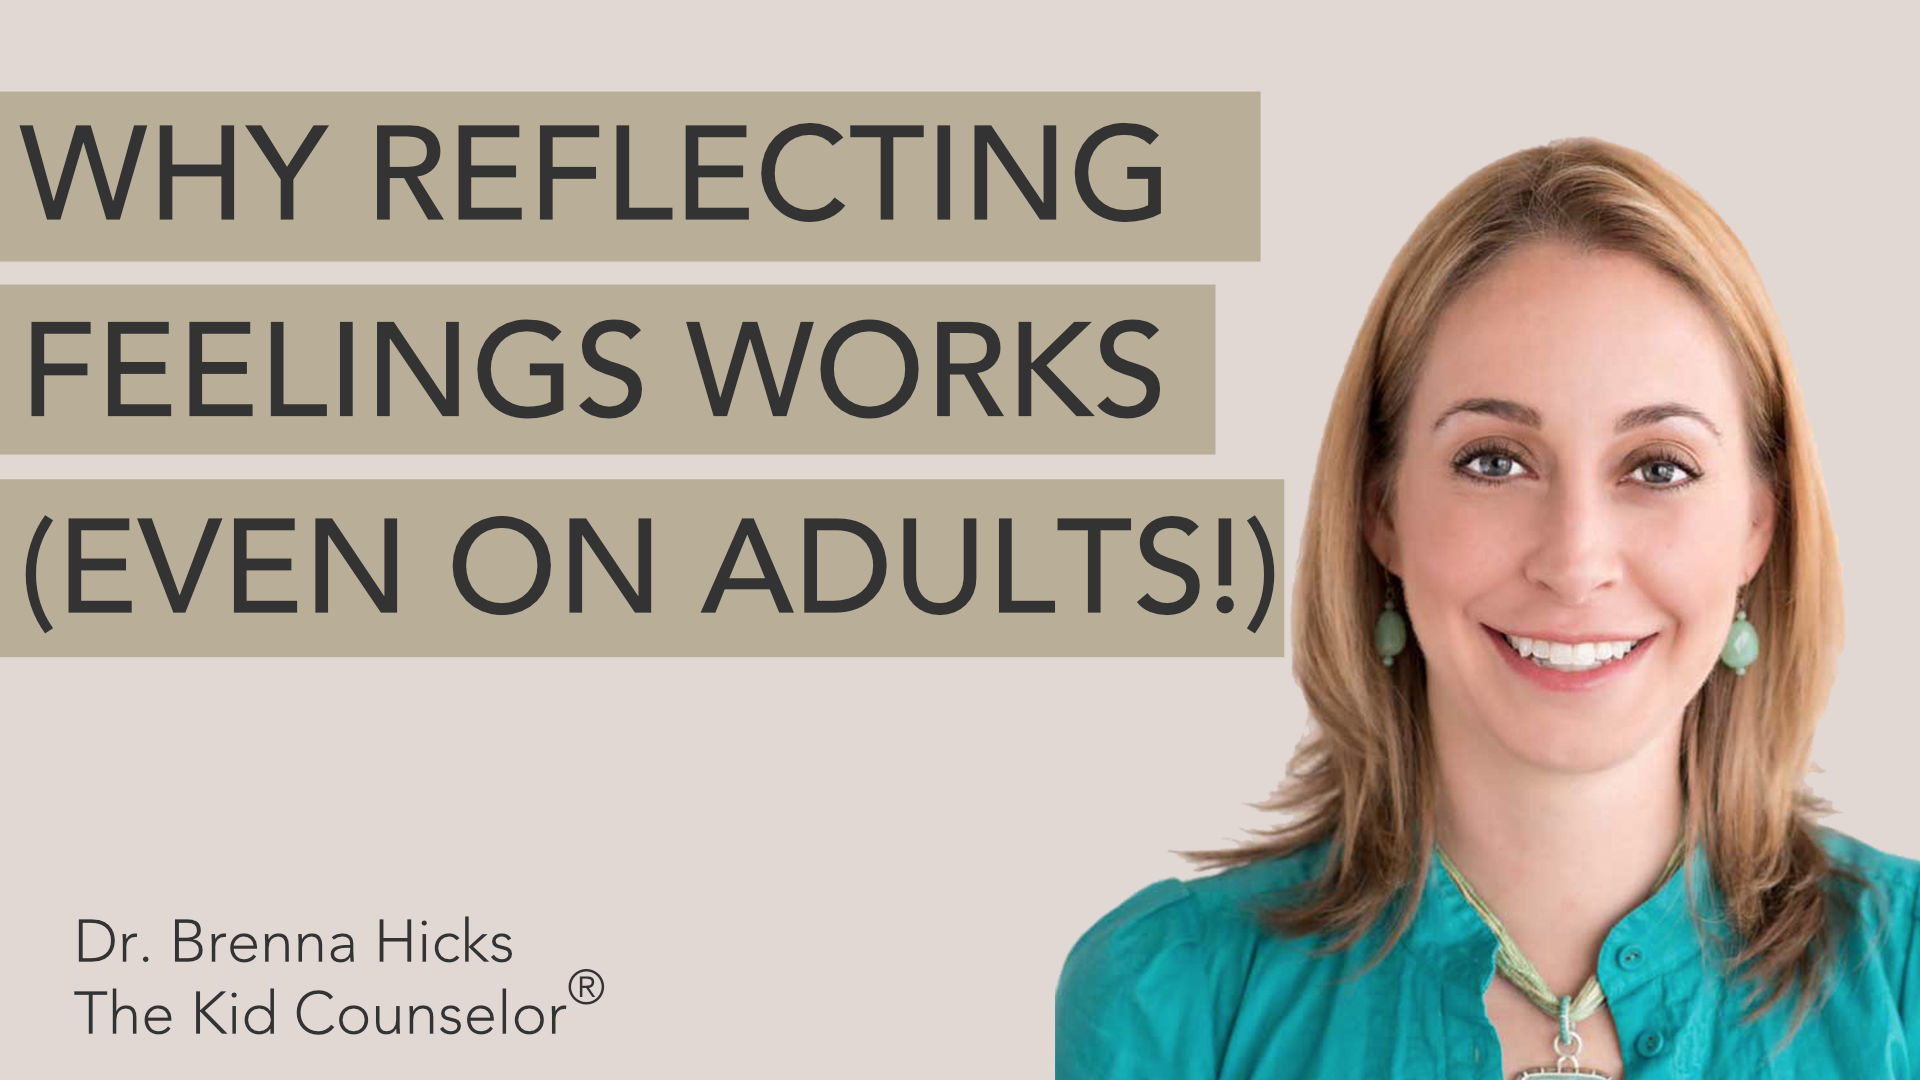 Why Reflecting Feelings Works (even on adults!)